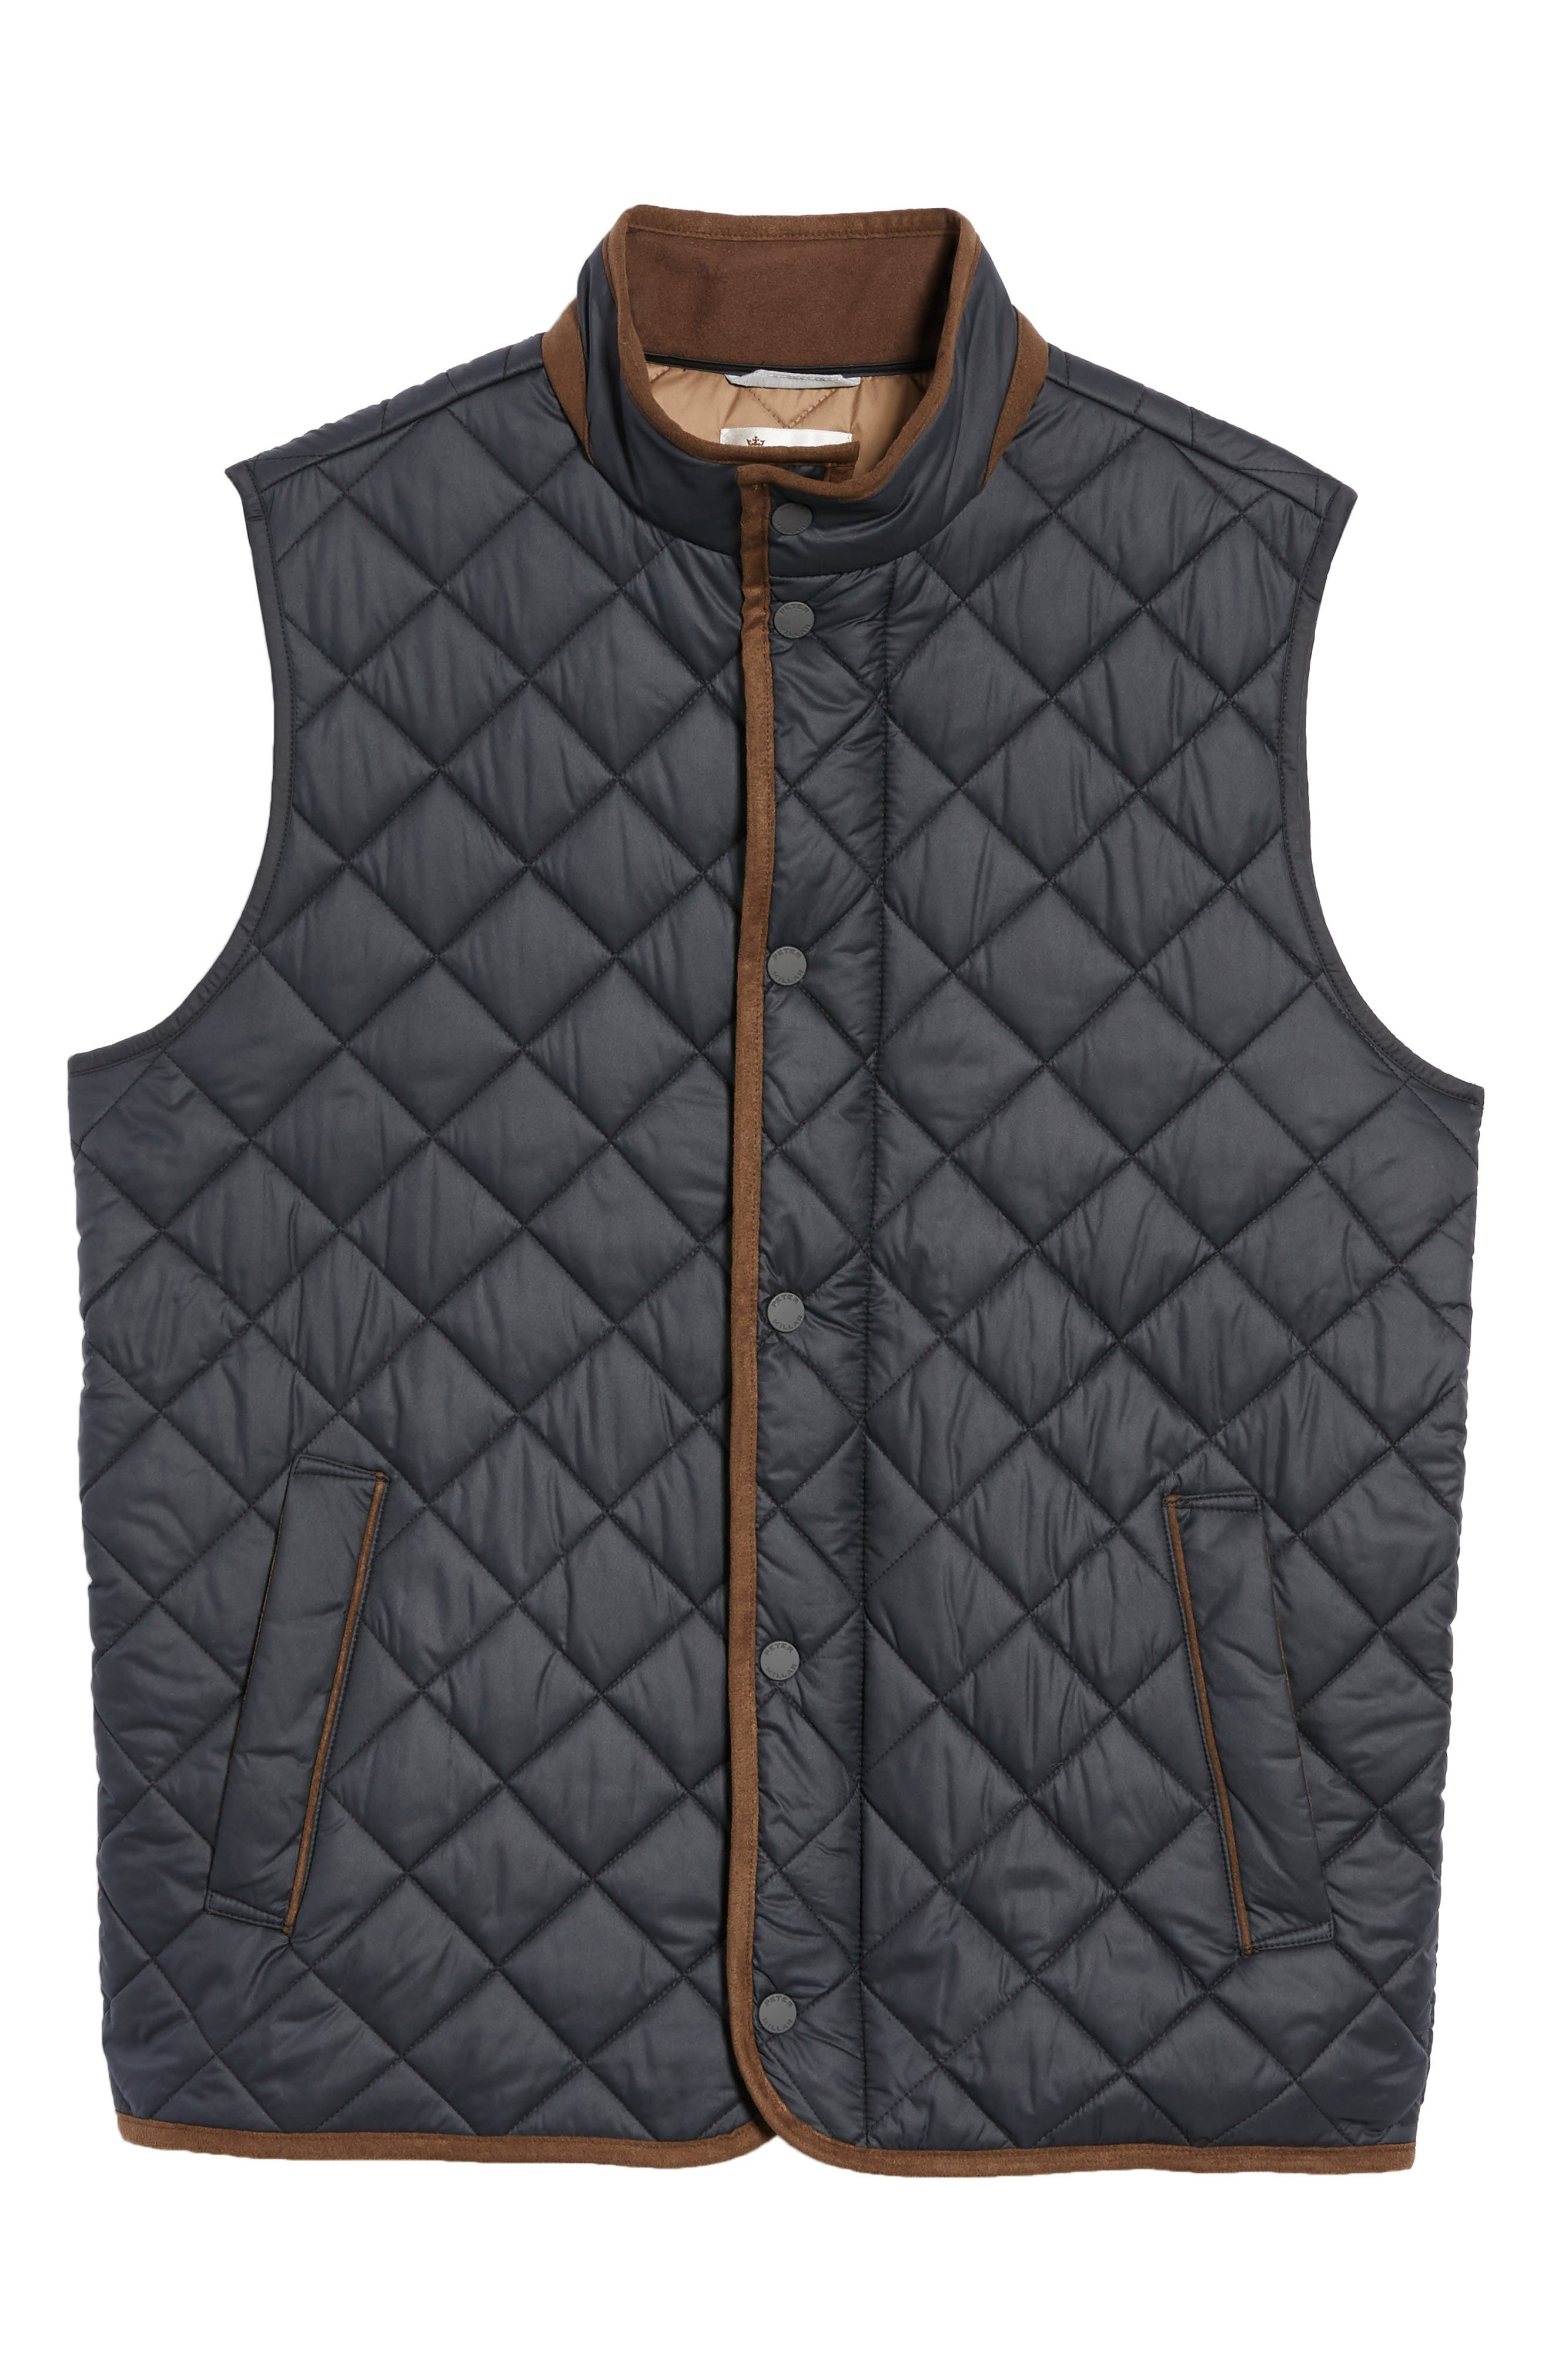 Essex Quilted Vest,                             Alternate thumbnail 5, color,                             001